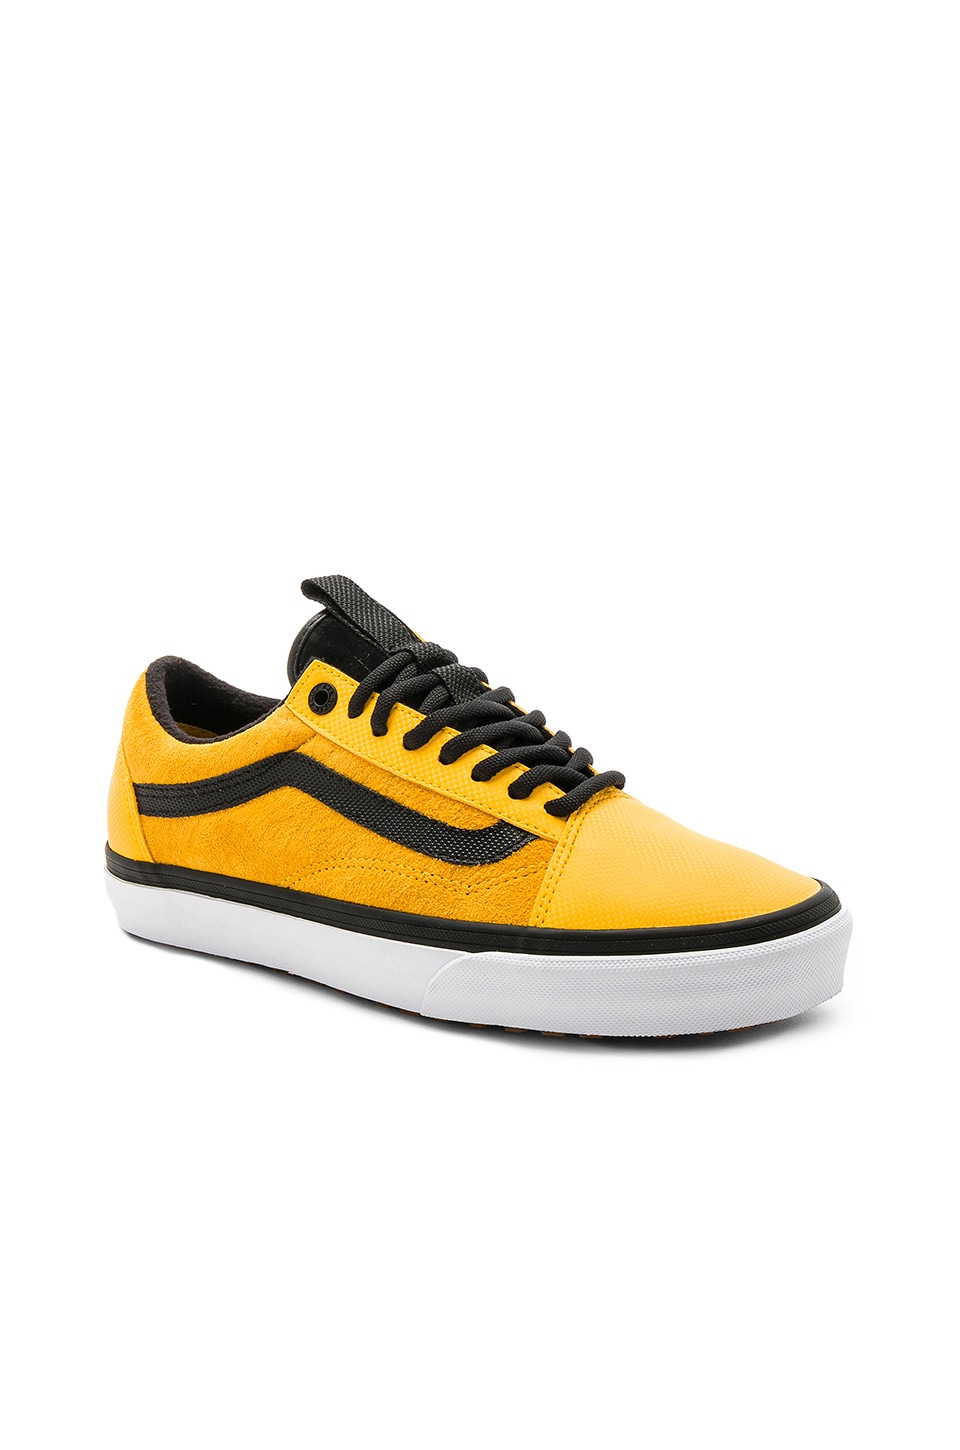 52f4a70216c2ca Vans x The North Face Old Skool MTE DX in TNF  Yellow   Black